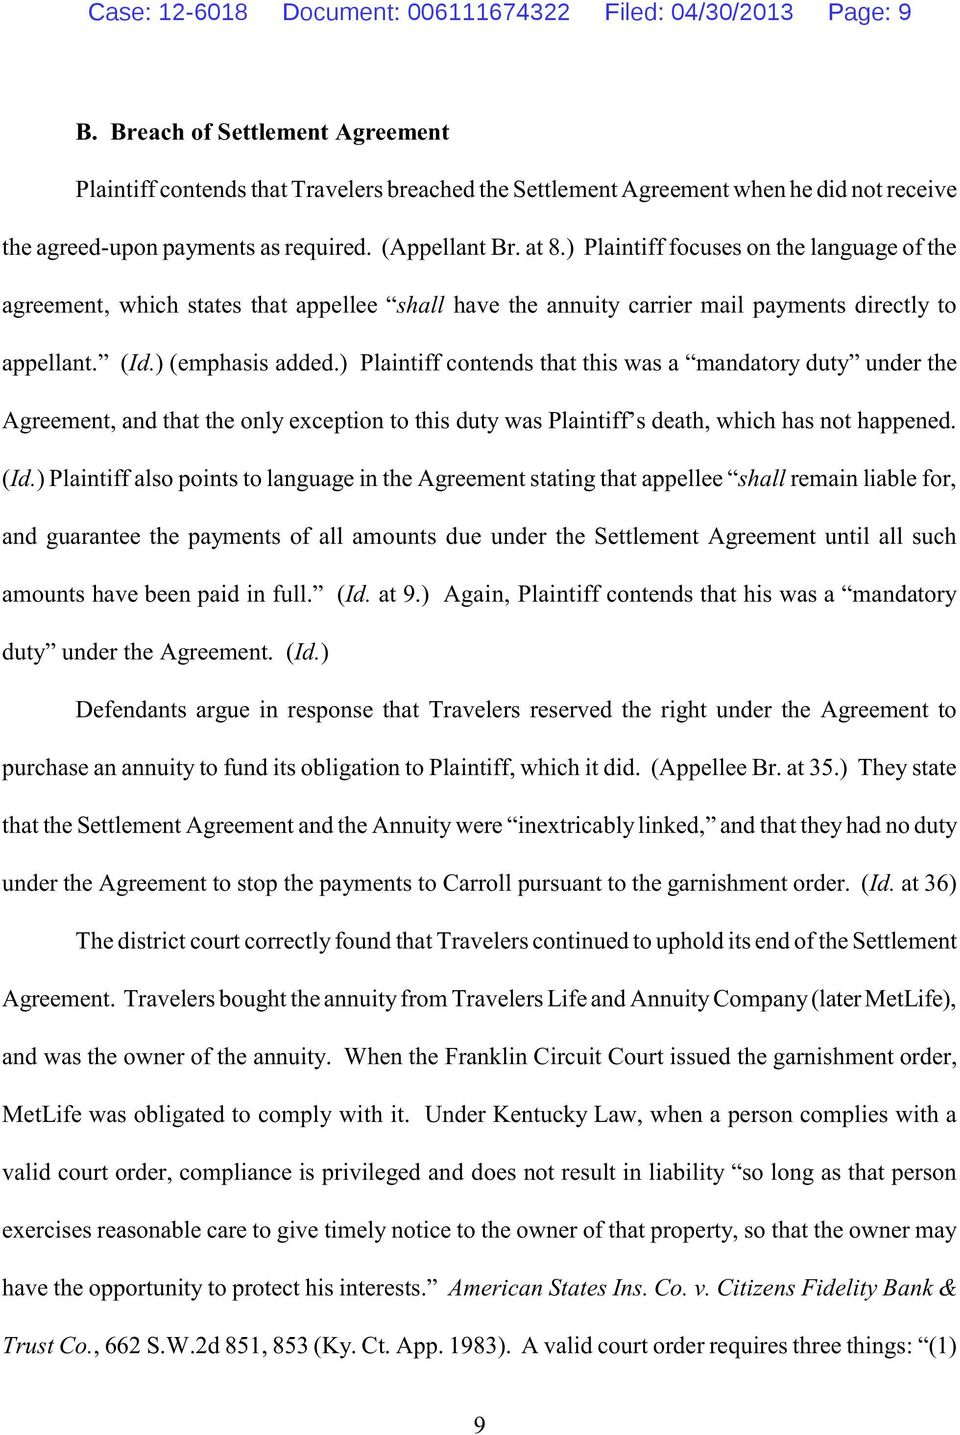 Plaintiff focuses on the language of the agreement, which states that appellee shall have the annuity carrier mail payments directly to appellant. (Id. (emphasis added.